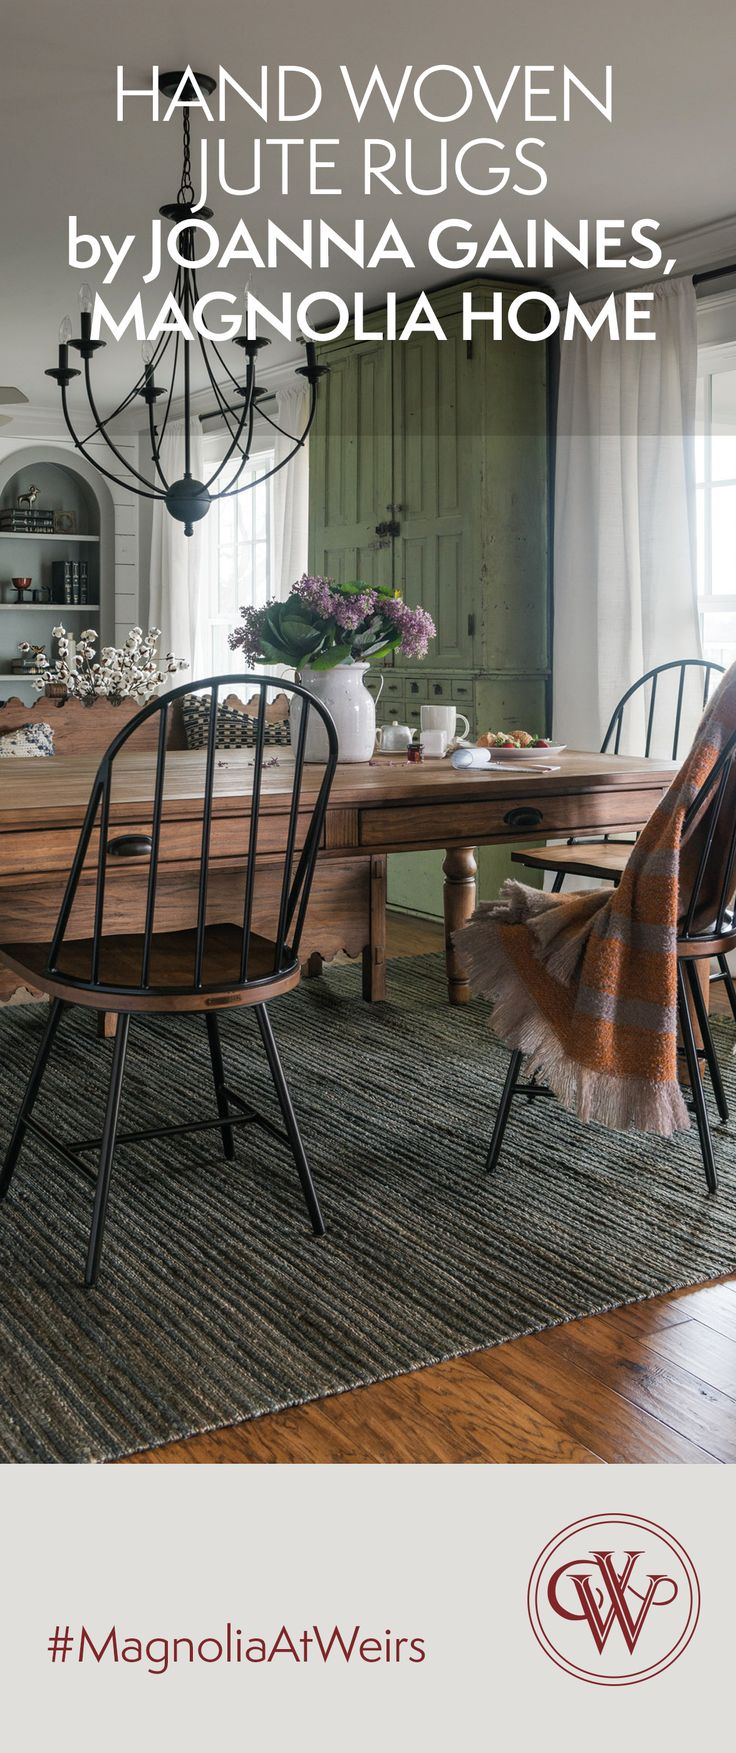 A real feet pleaser. A refined but casual rug designed by Joanna Gaines of Magnolia Home and Dallas-based Loloi Rugs. The Drake Storm rug is hand woven in India and made with 100% jute and rich dyes. Now available at all Weir's Furniture locations. #MagnoliaAtWeirs